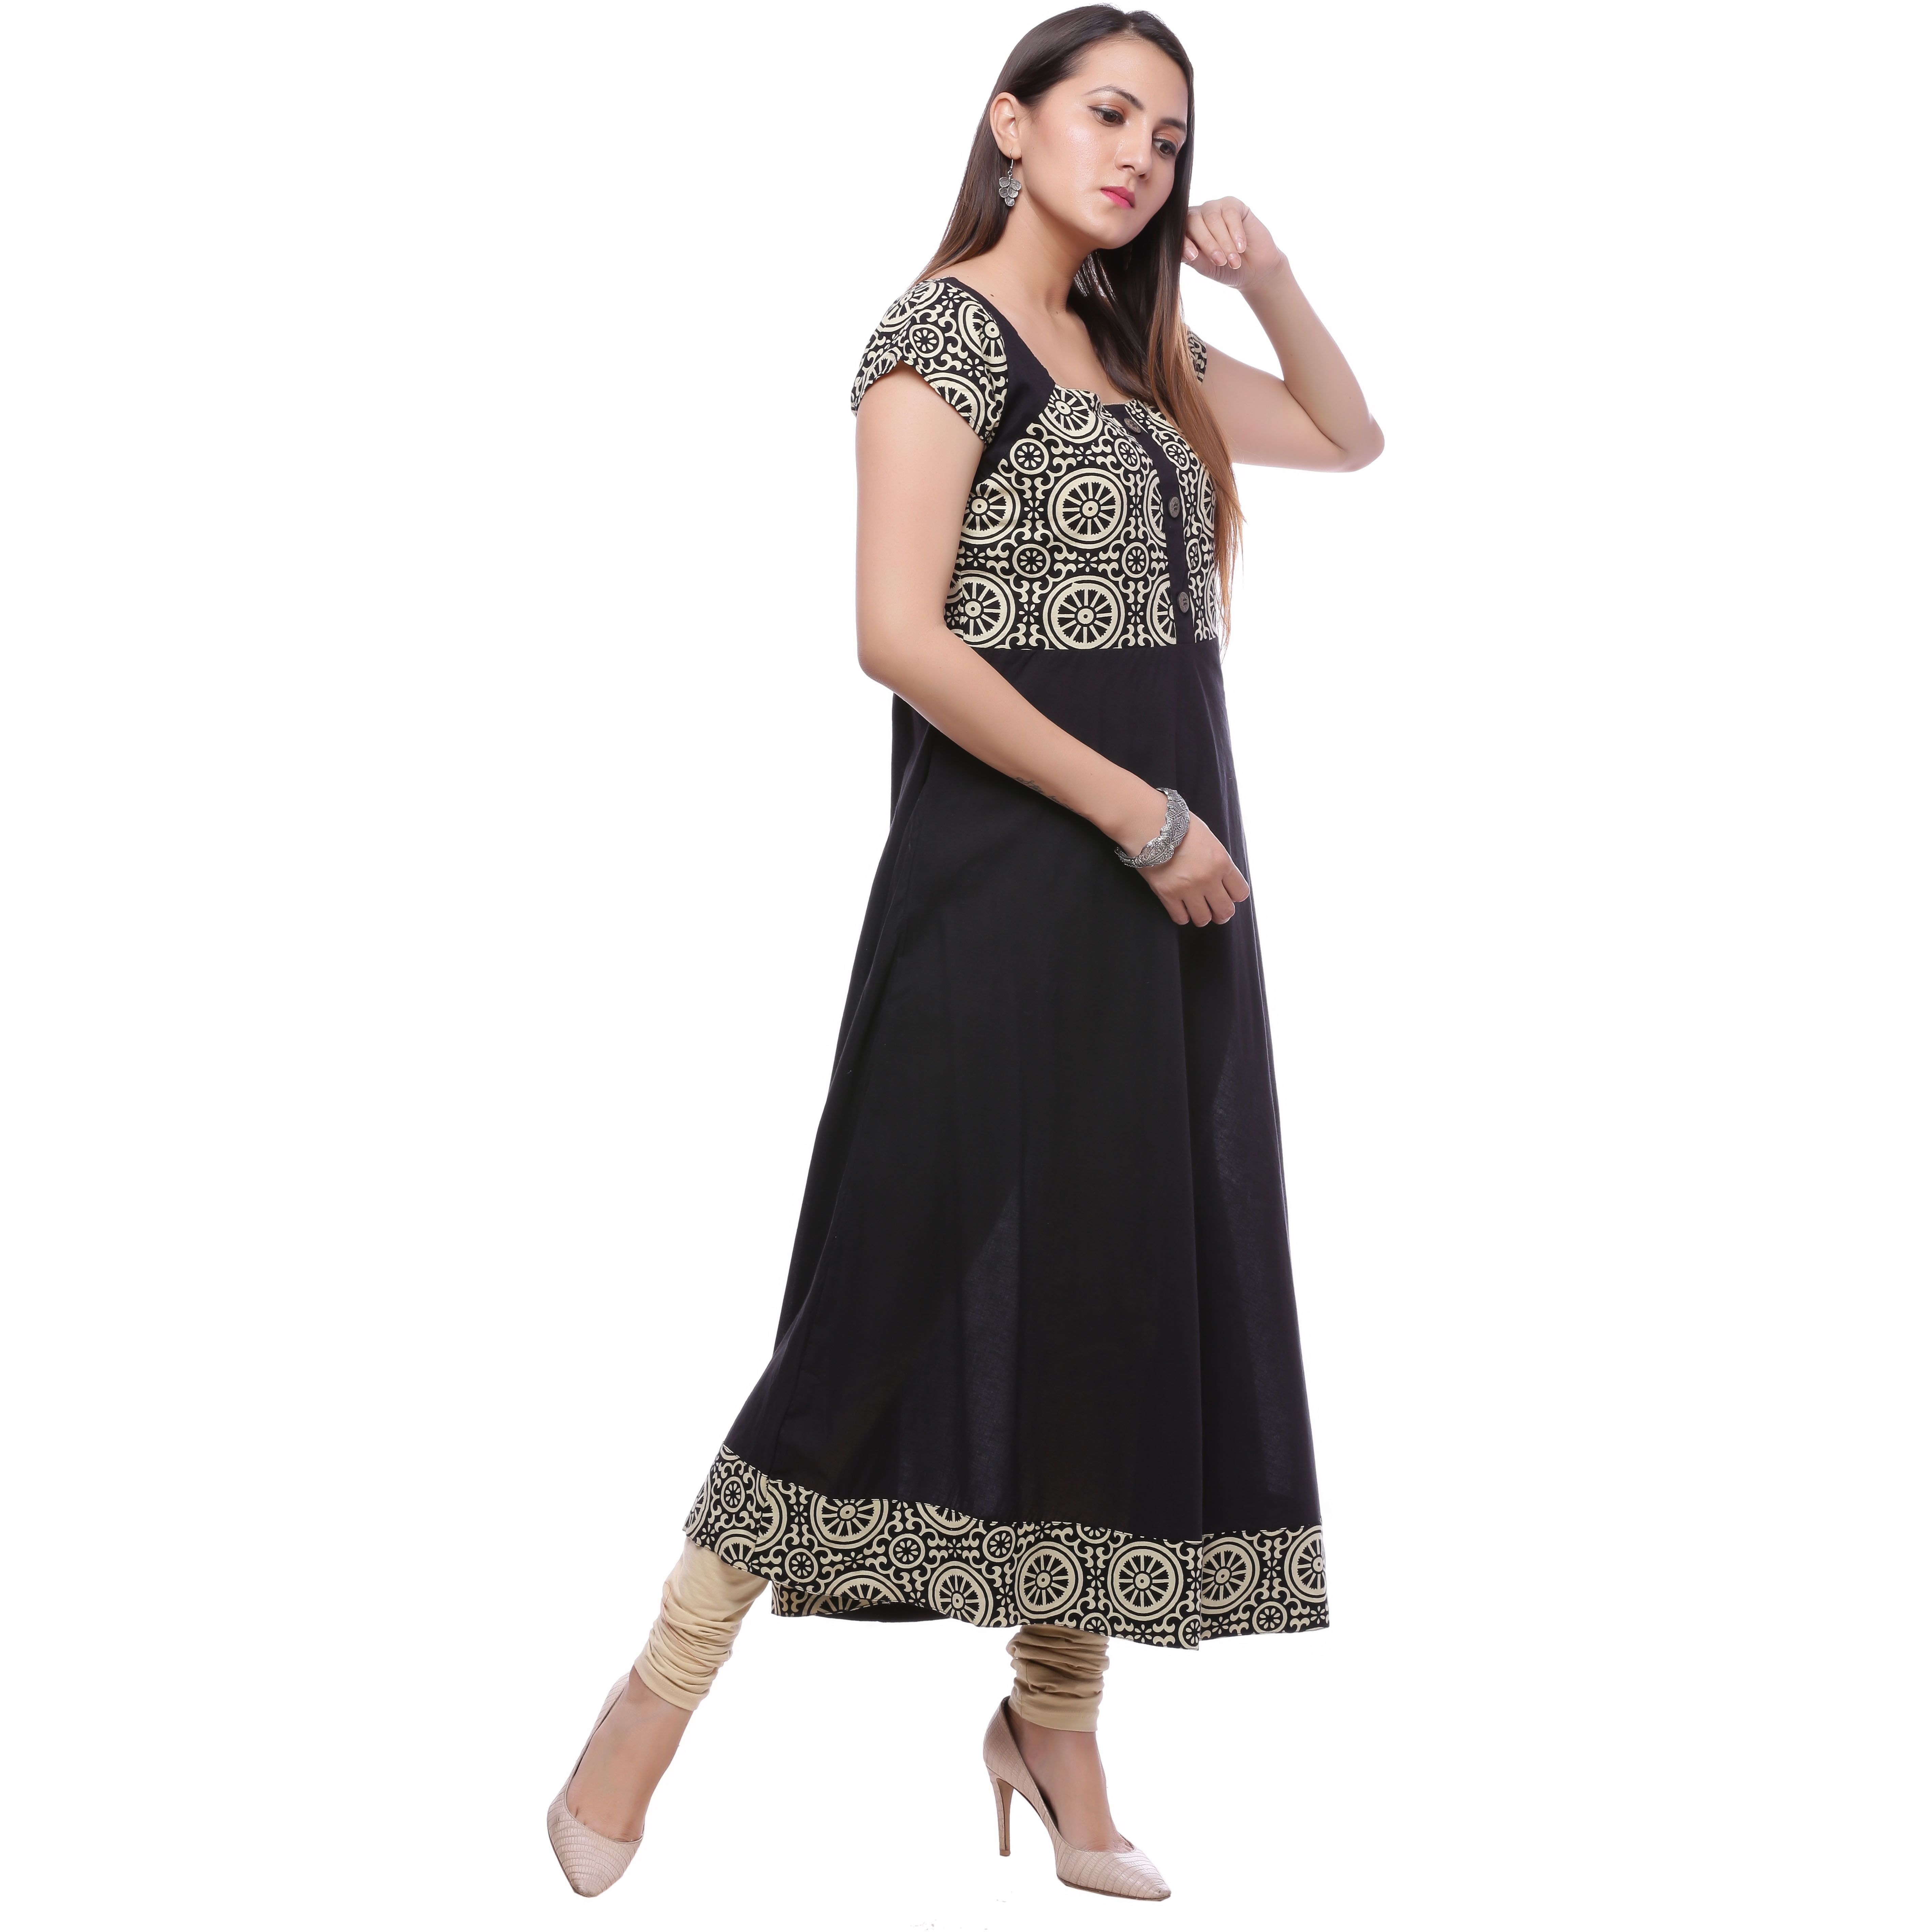 Ayan Black::Beige Short Festive & Party Wear Anarkali Kurta for Girls